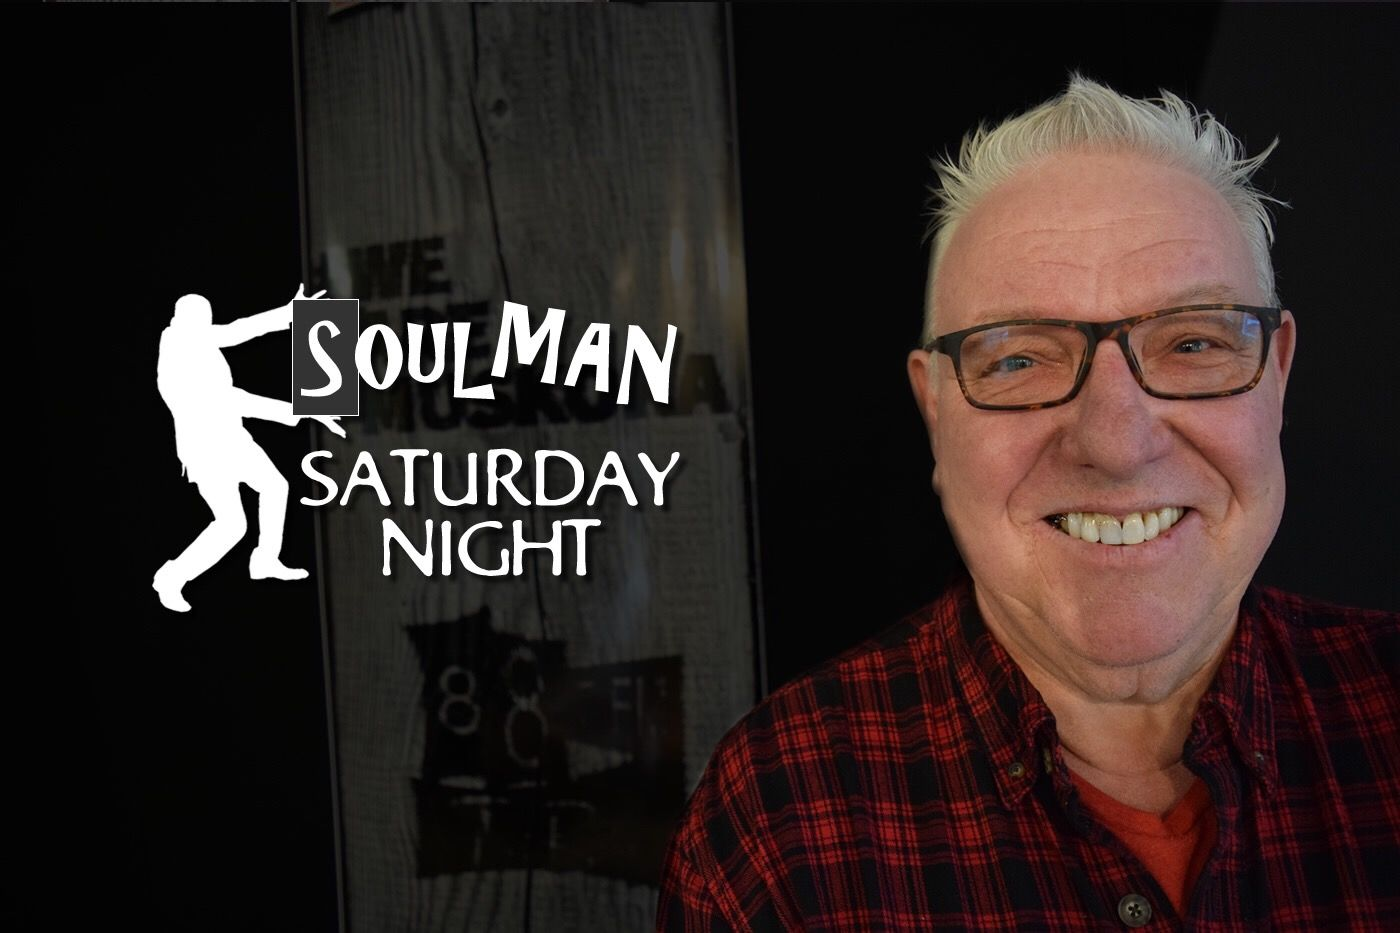 Soulman Saturday Night